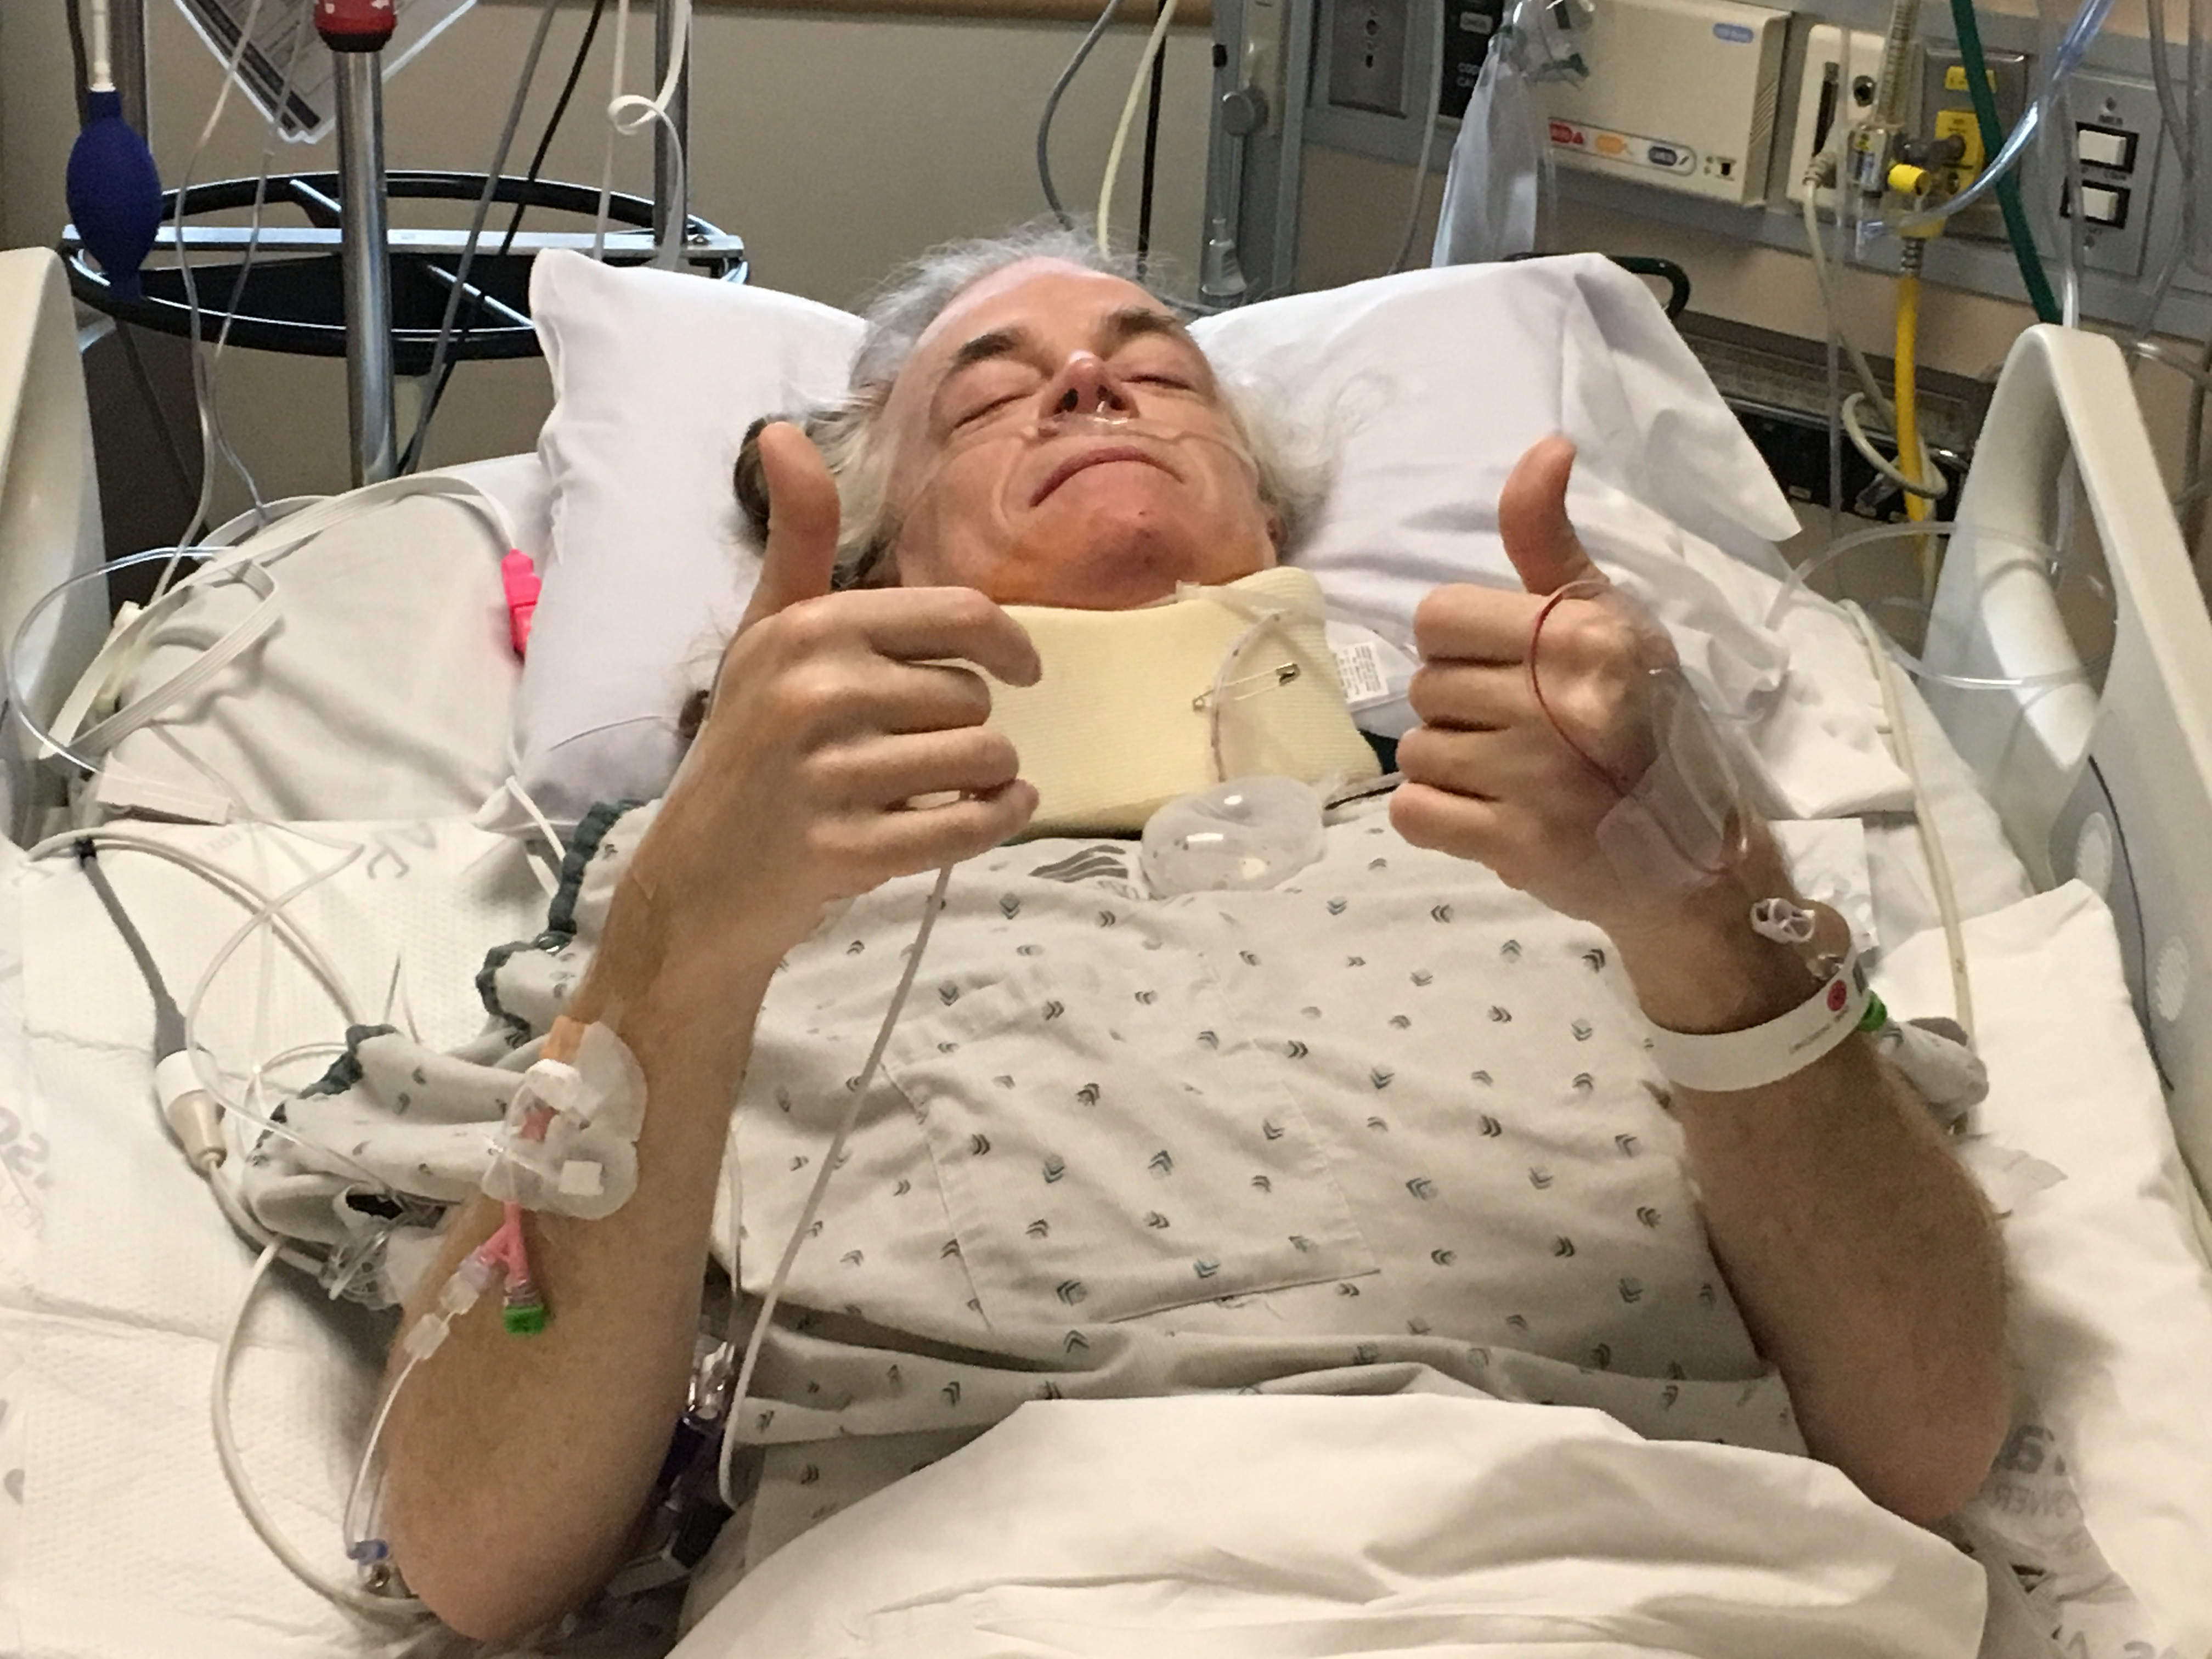 Charm City Shaman Recovering from Surgery